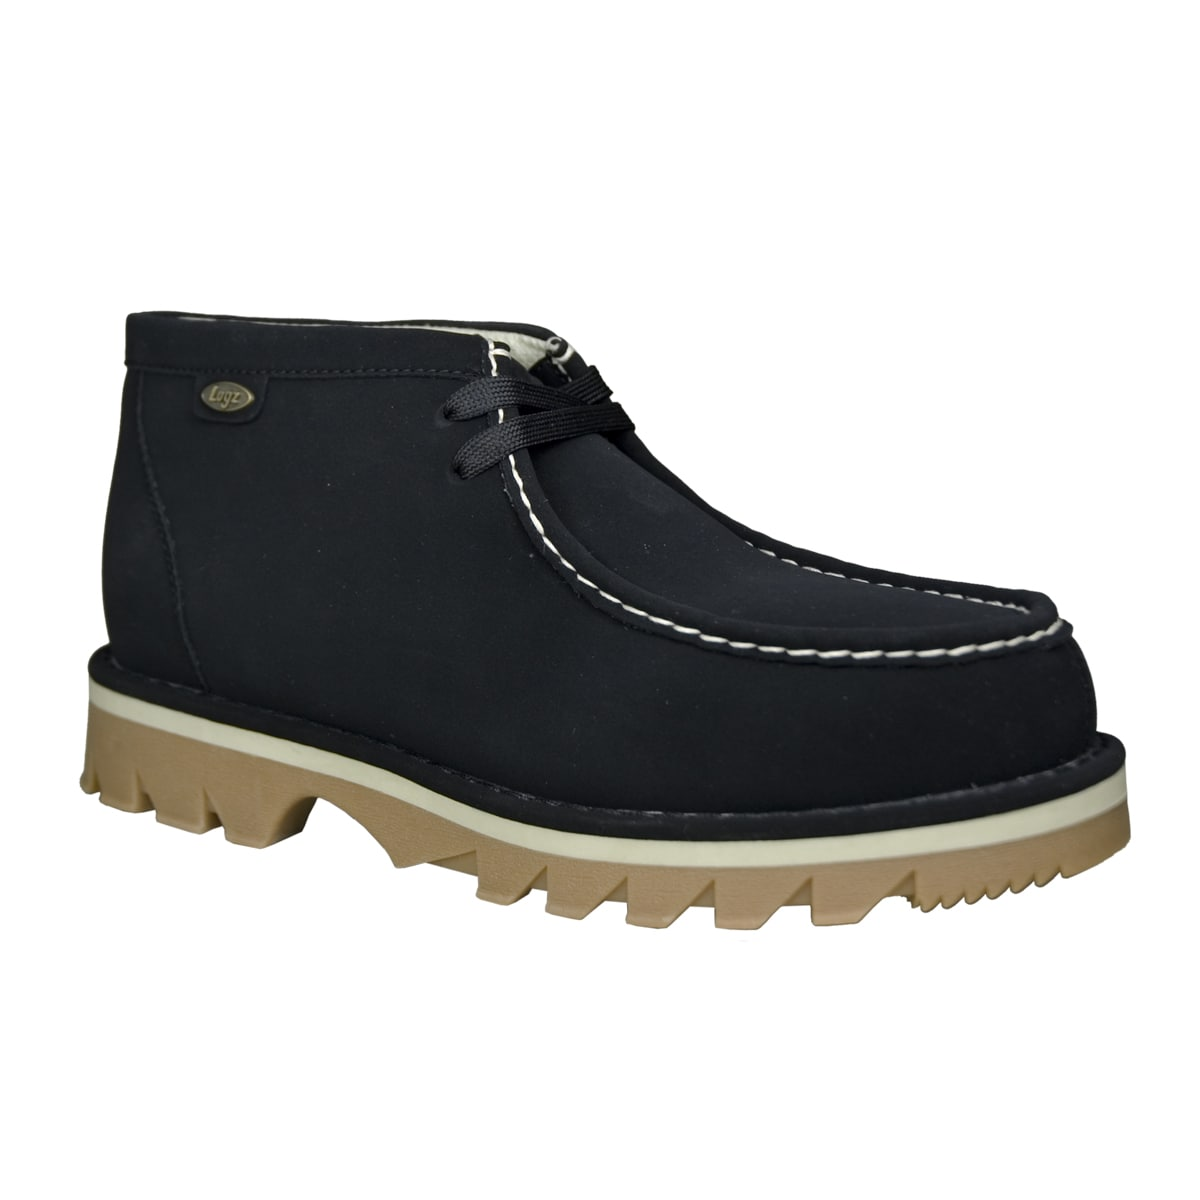 Lugz Men's Wally Mid